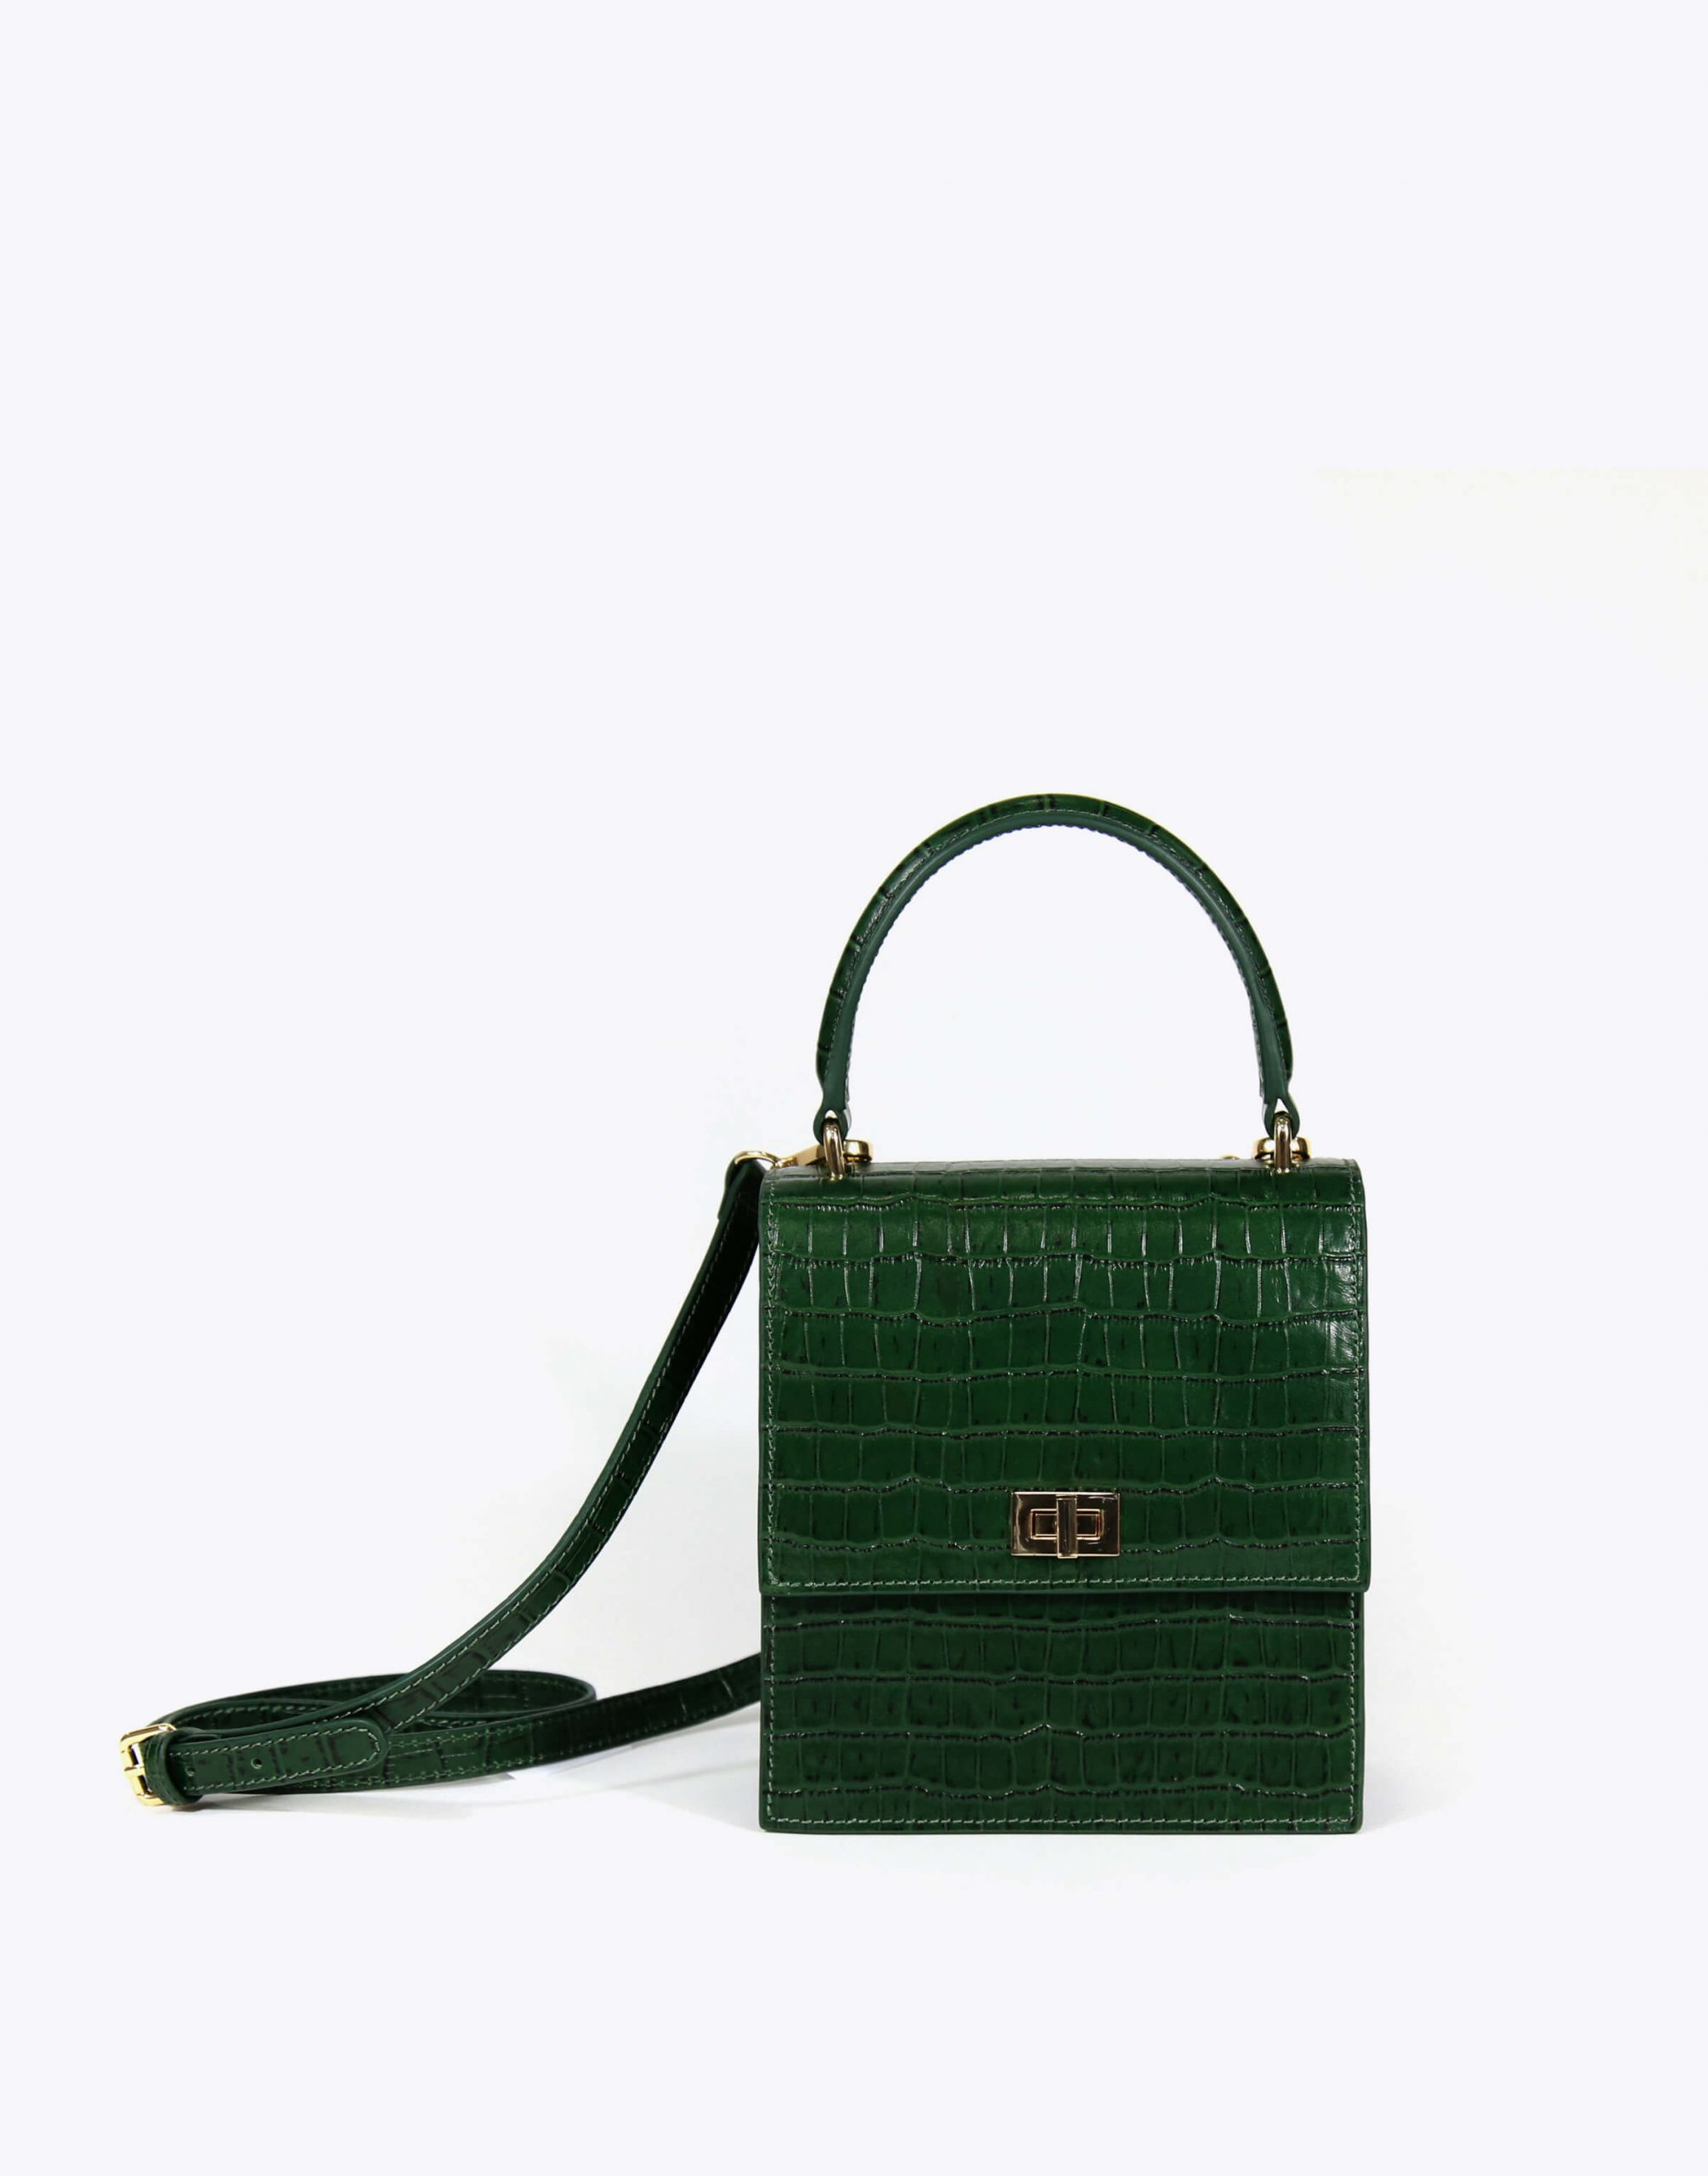 Neely & Chloe No. 19 Mini Lady Bag Croc Strap View Green